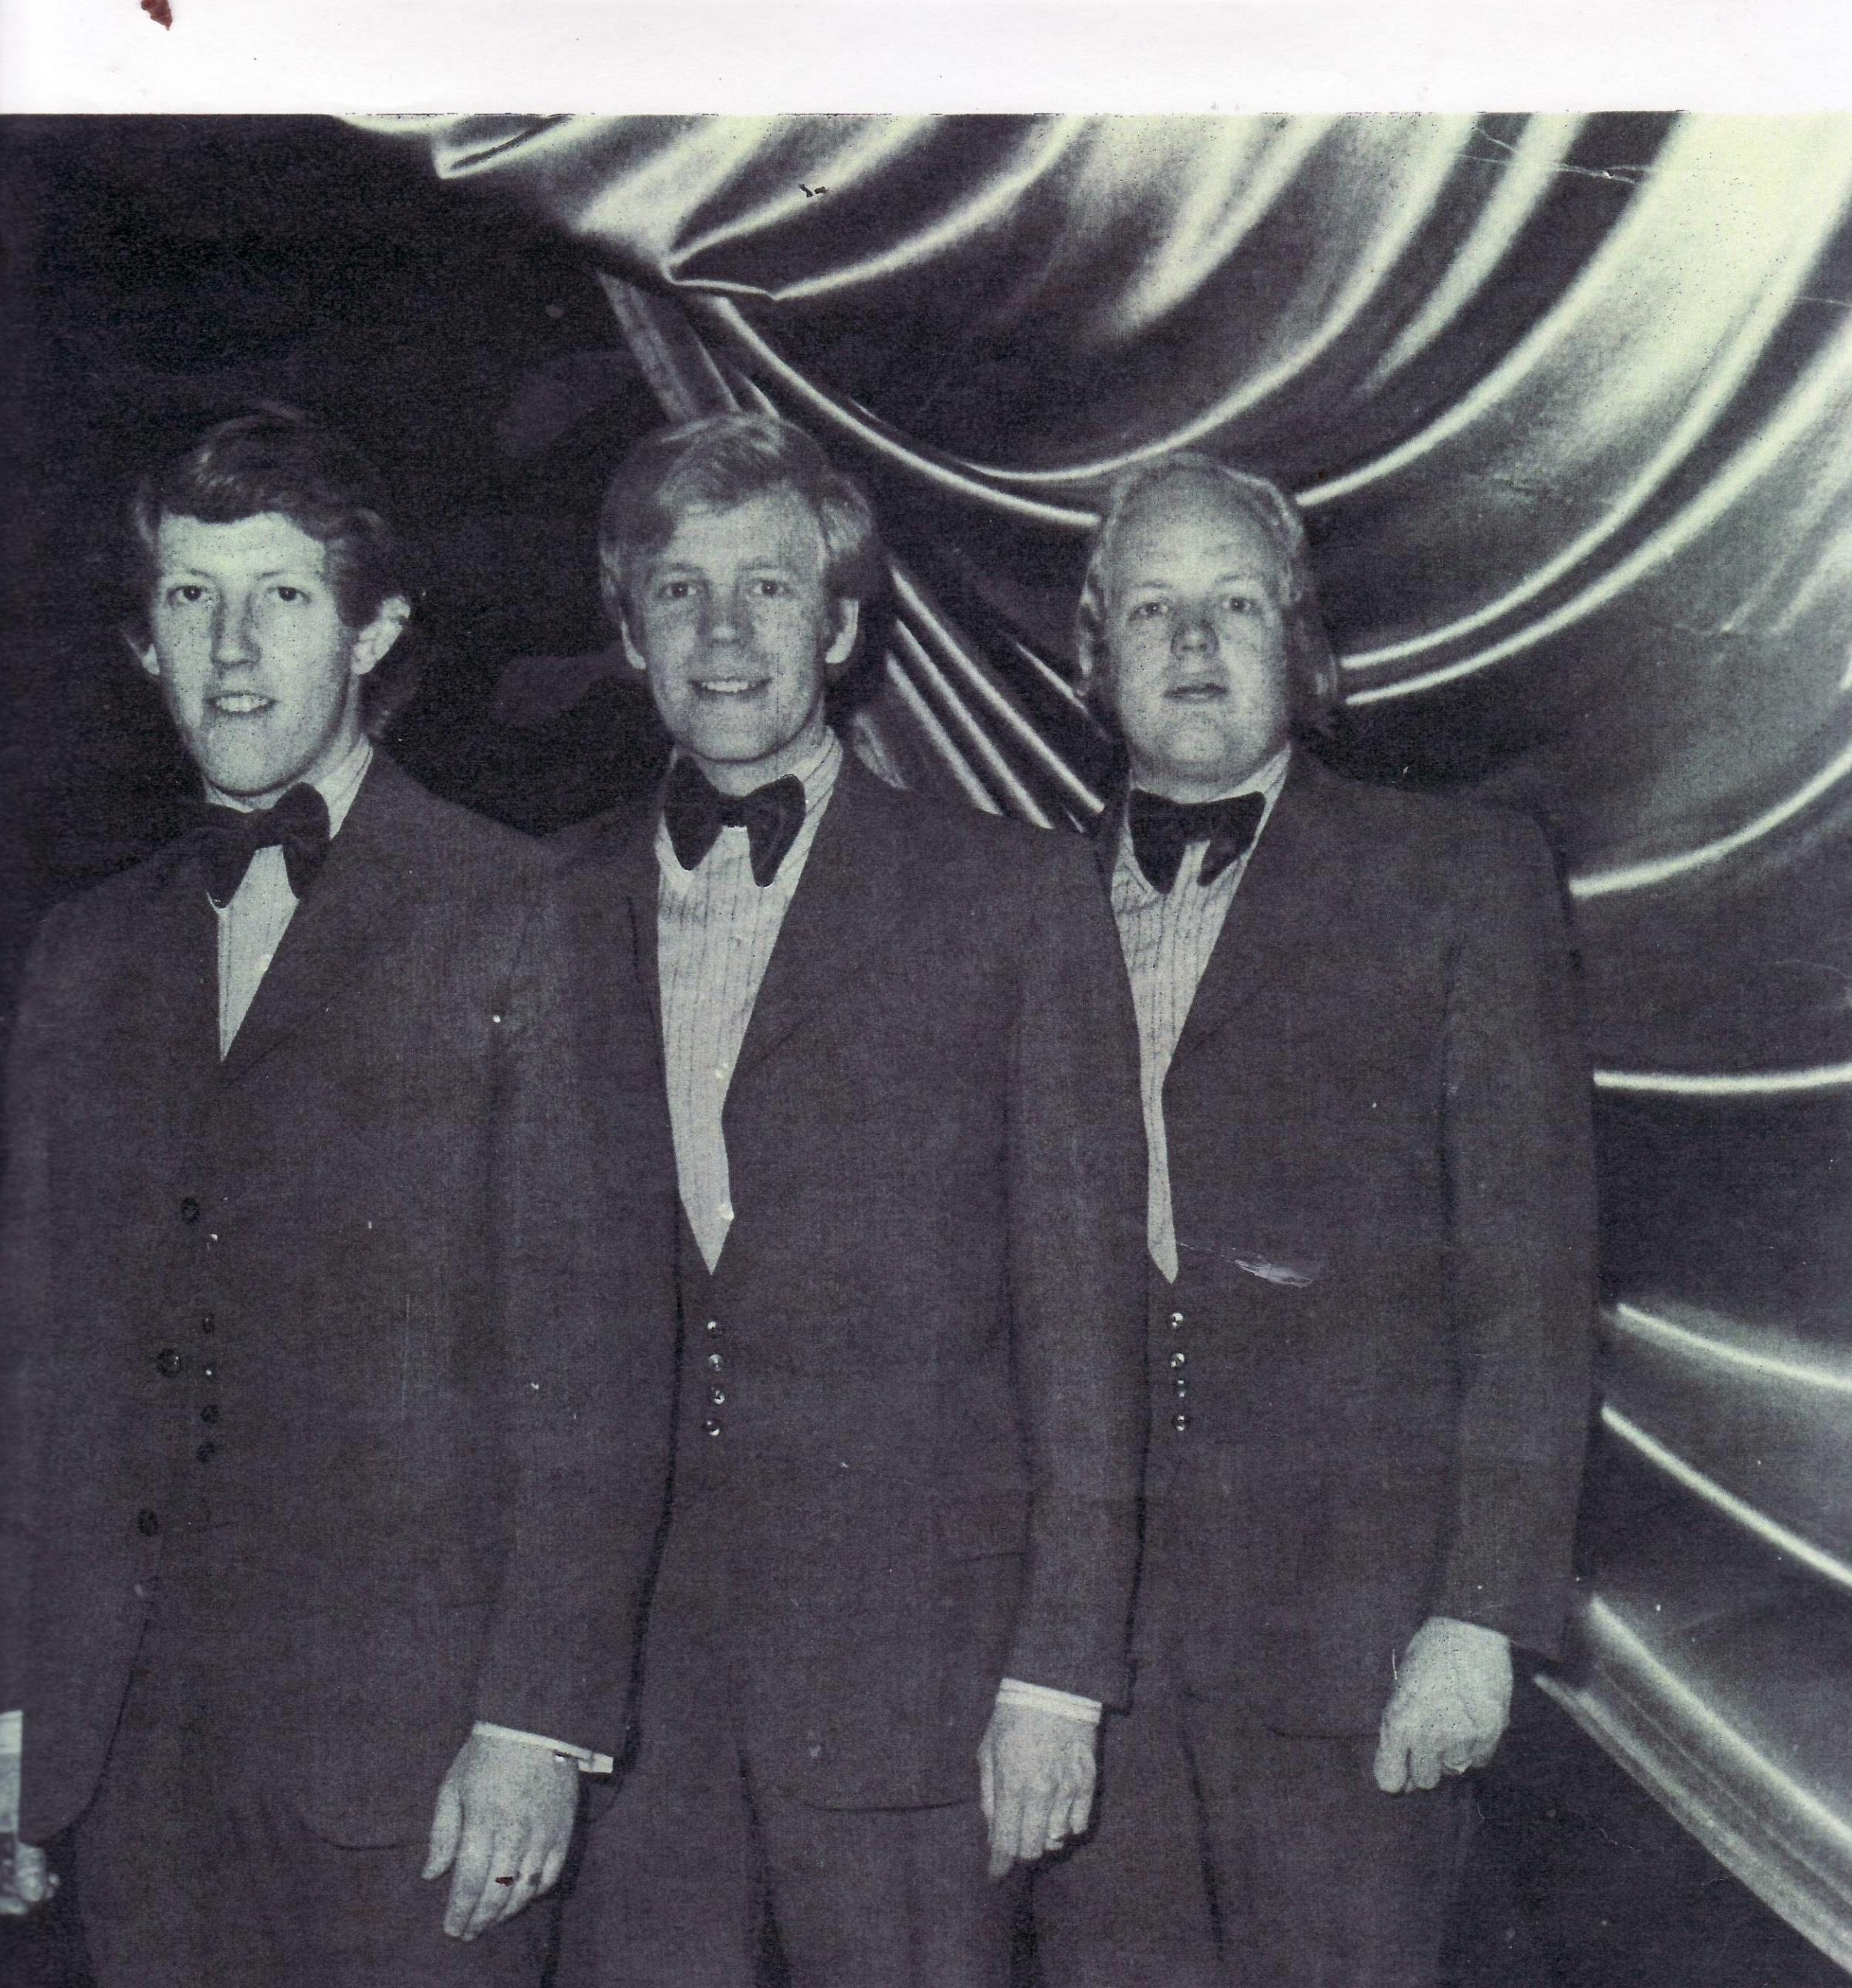 The Doveston Brothers who performed in Keighley during the 1960s